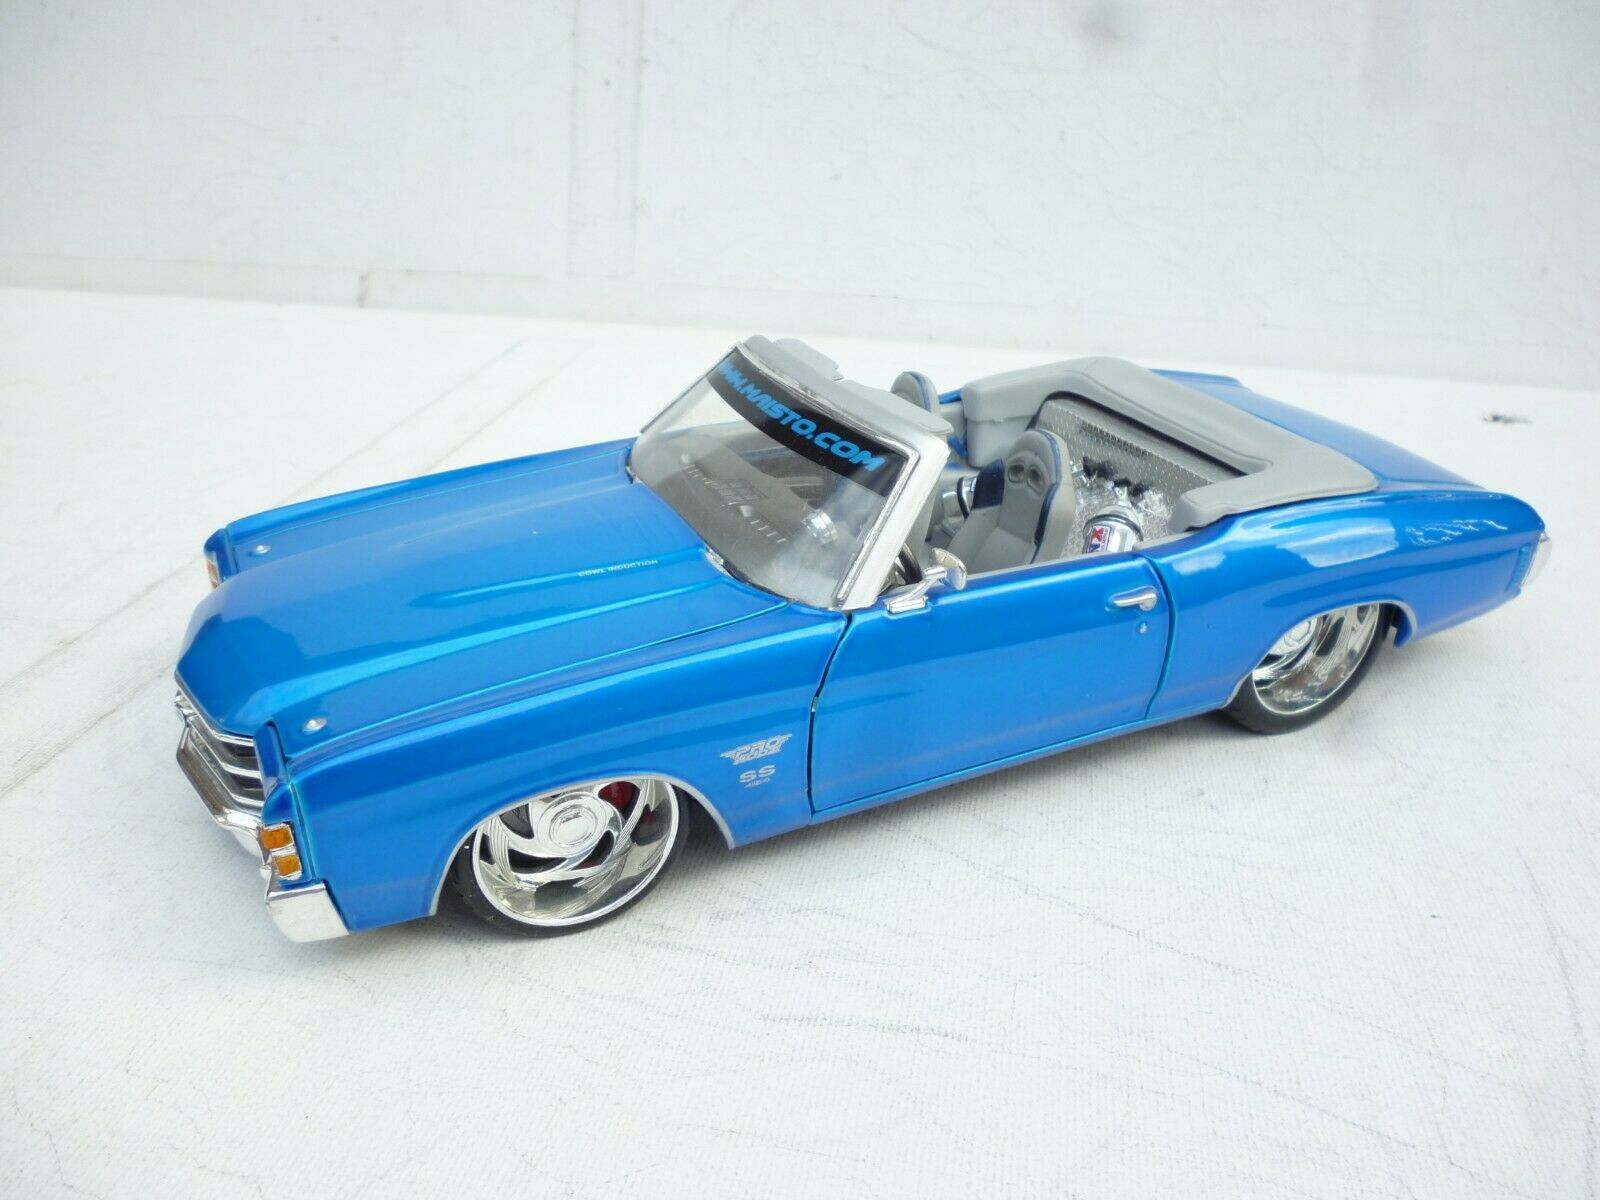 1 18 Maisto ProRodz 1971 Chevrolet Chevelle SS454 Congreenible bluee NO Box